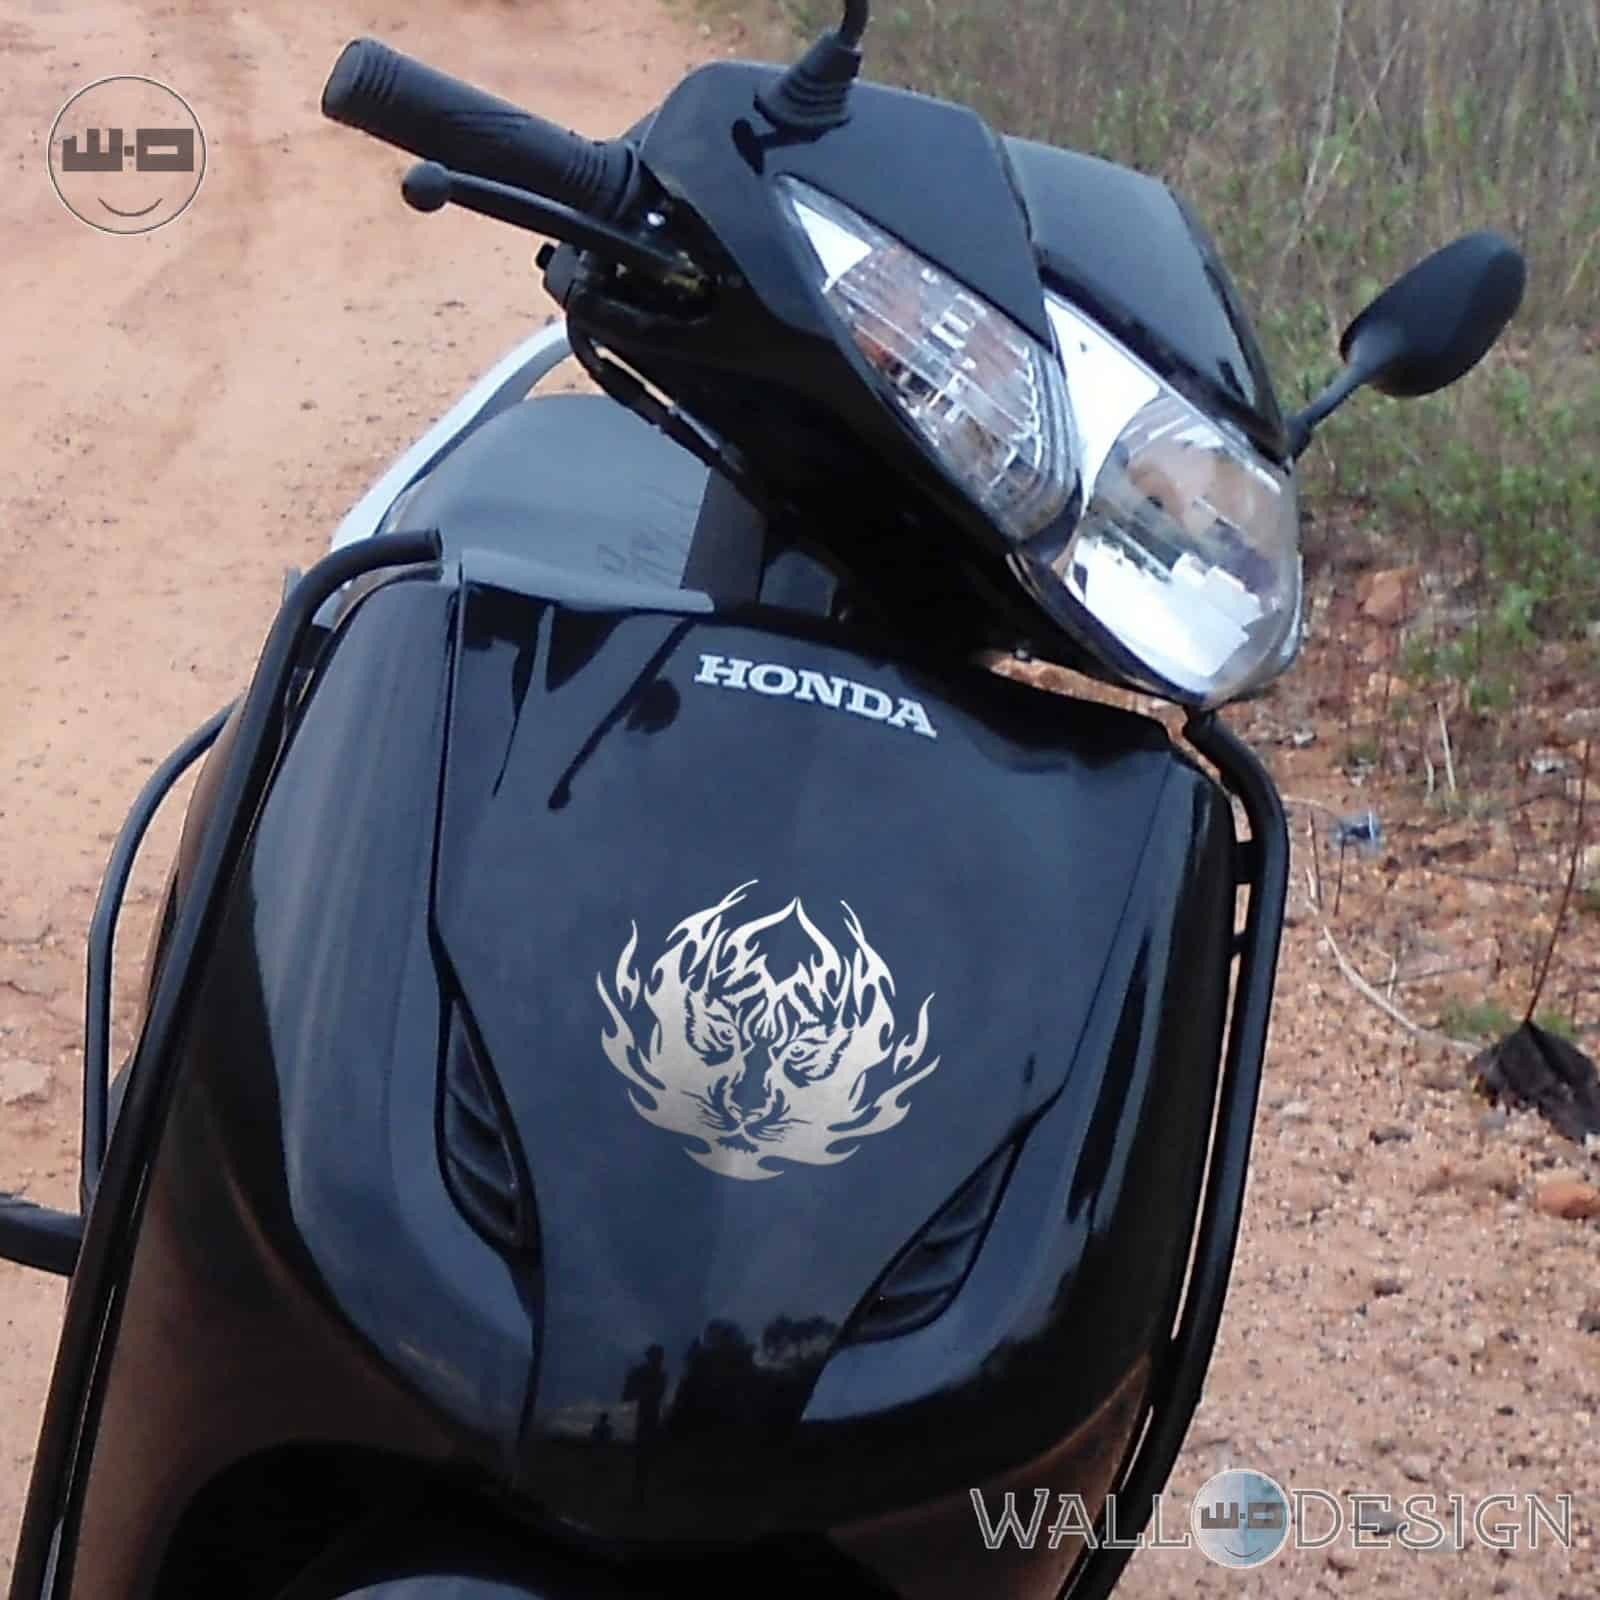 Wdc02023c walldesign sticker for bikes flame in eye of tiger silver jpg